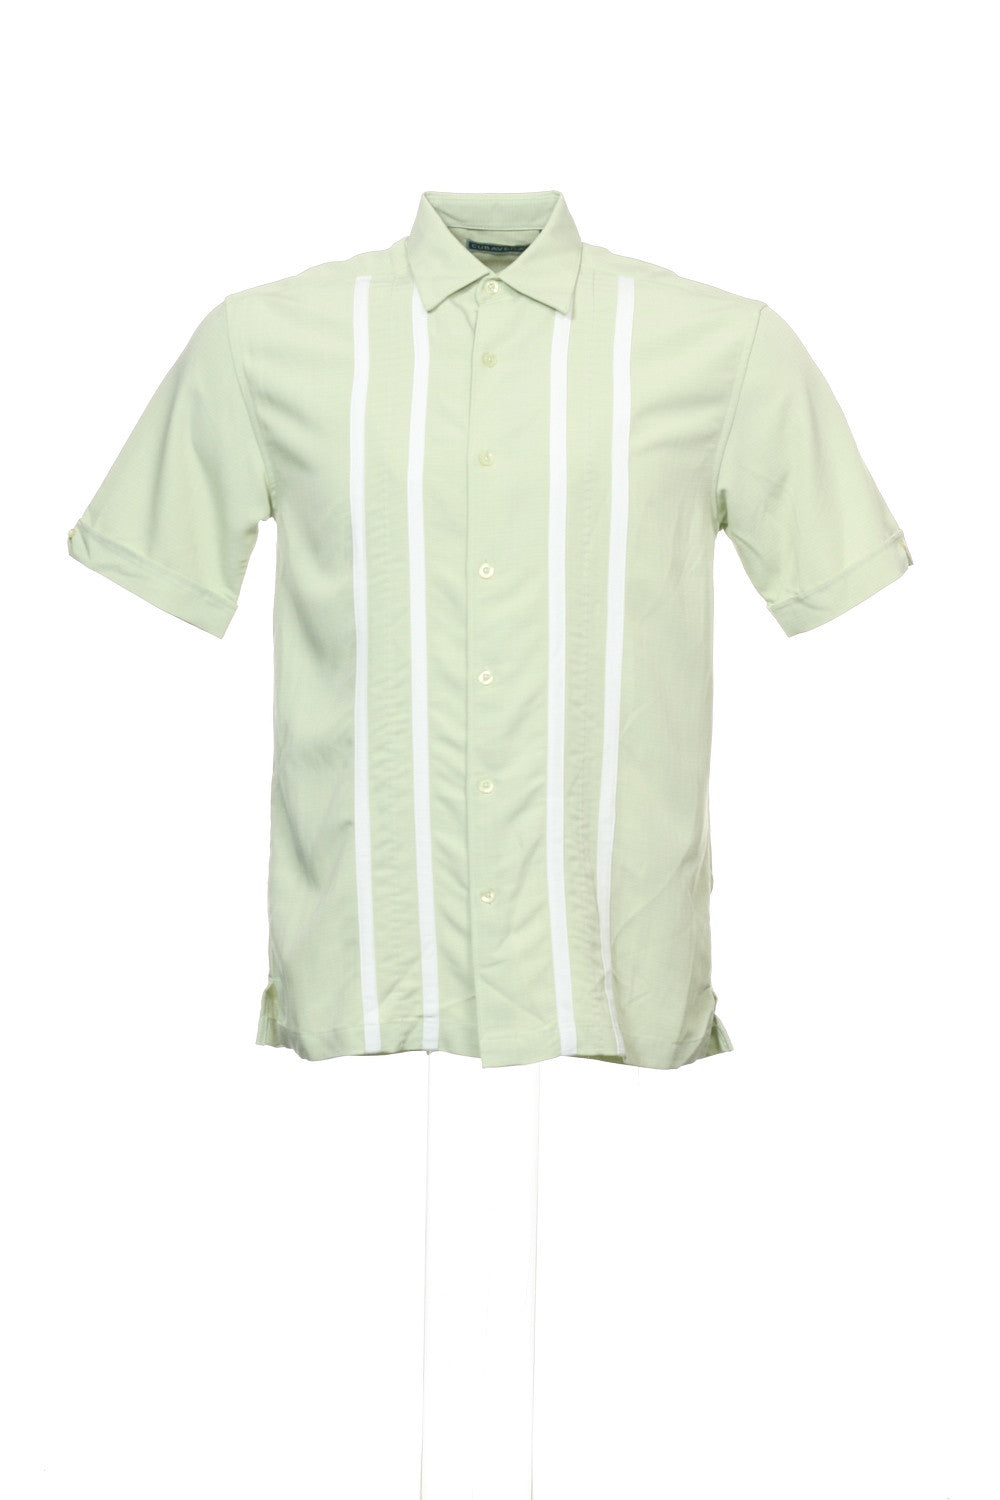 Cubavera Mens Light Green Striped Guayabera Shirt